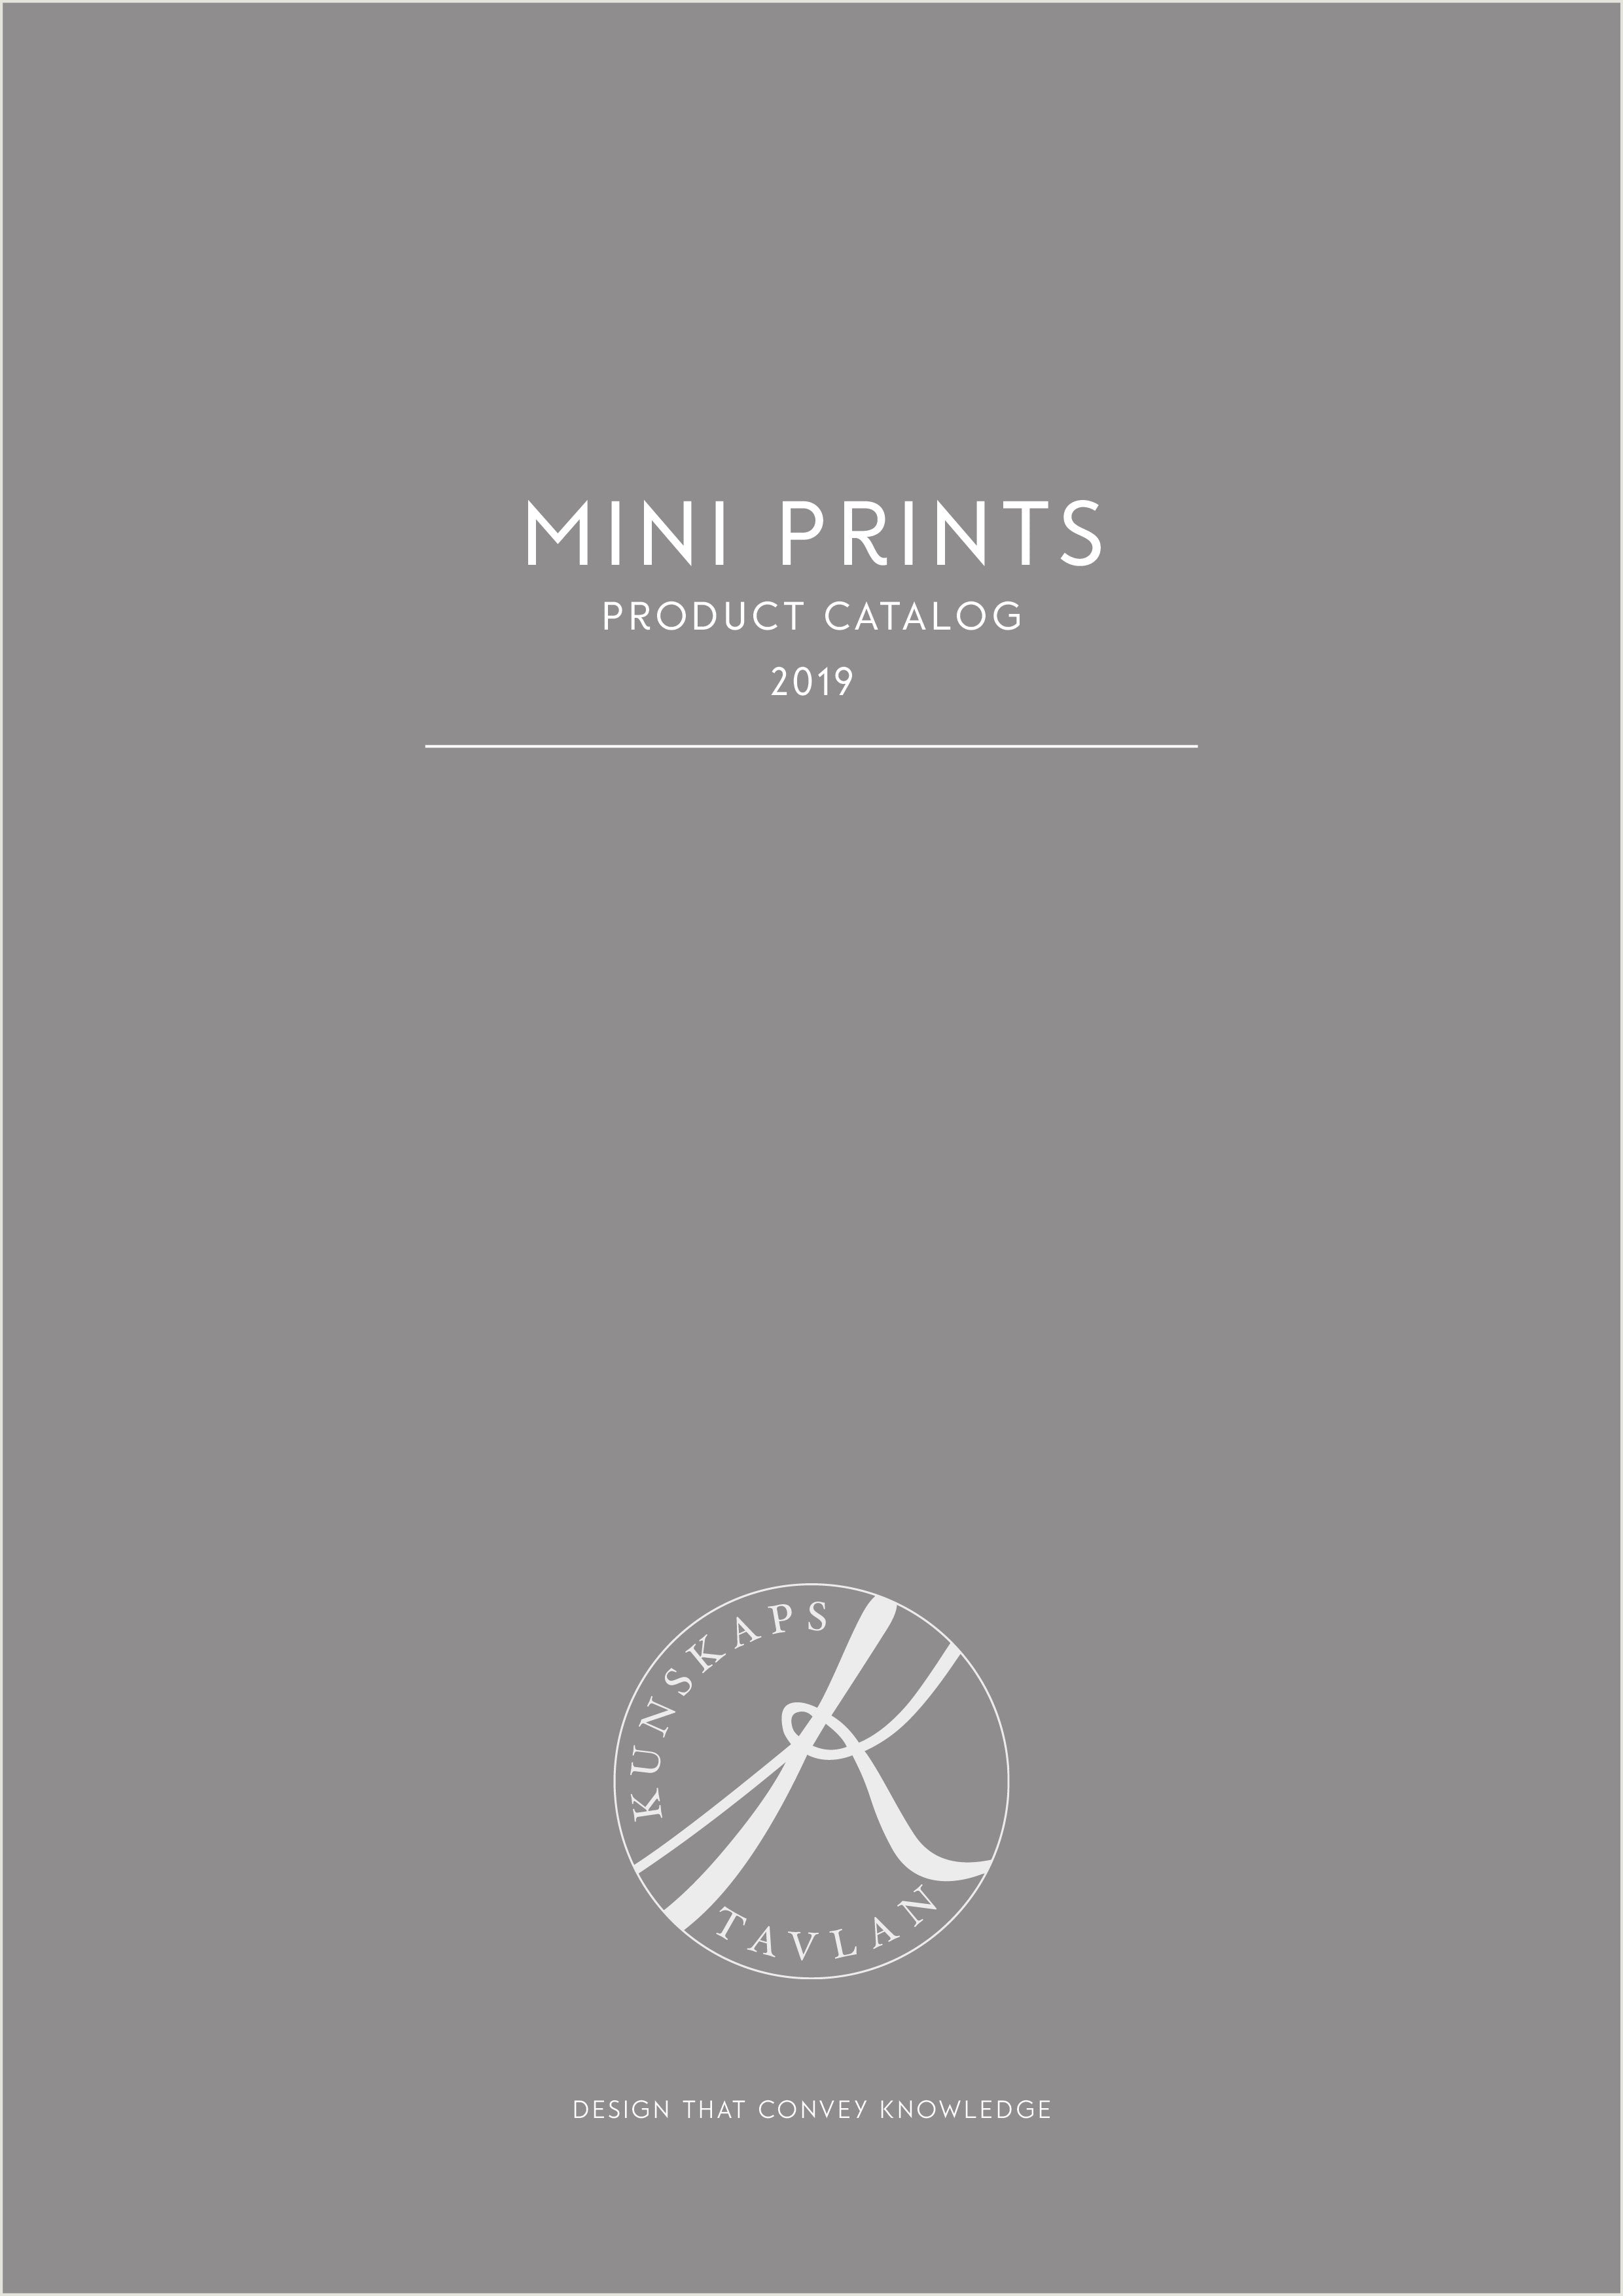 kunskapstavlan product catalog mini prints